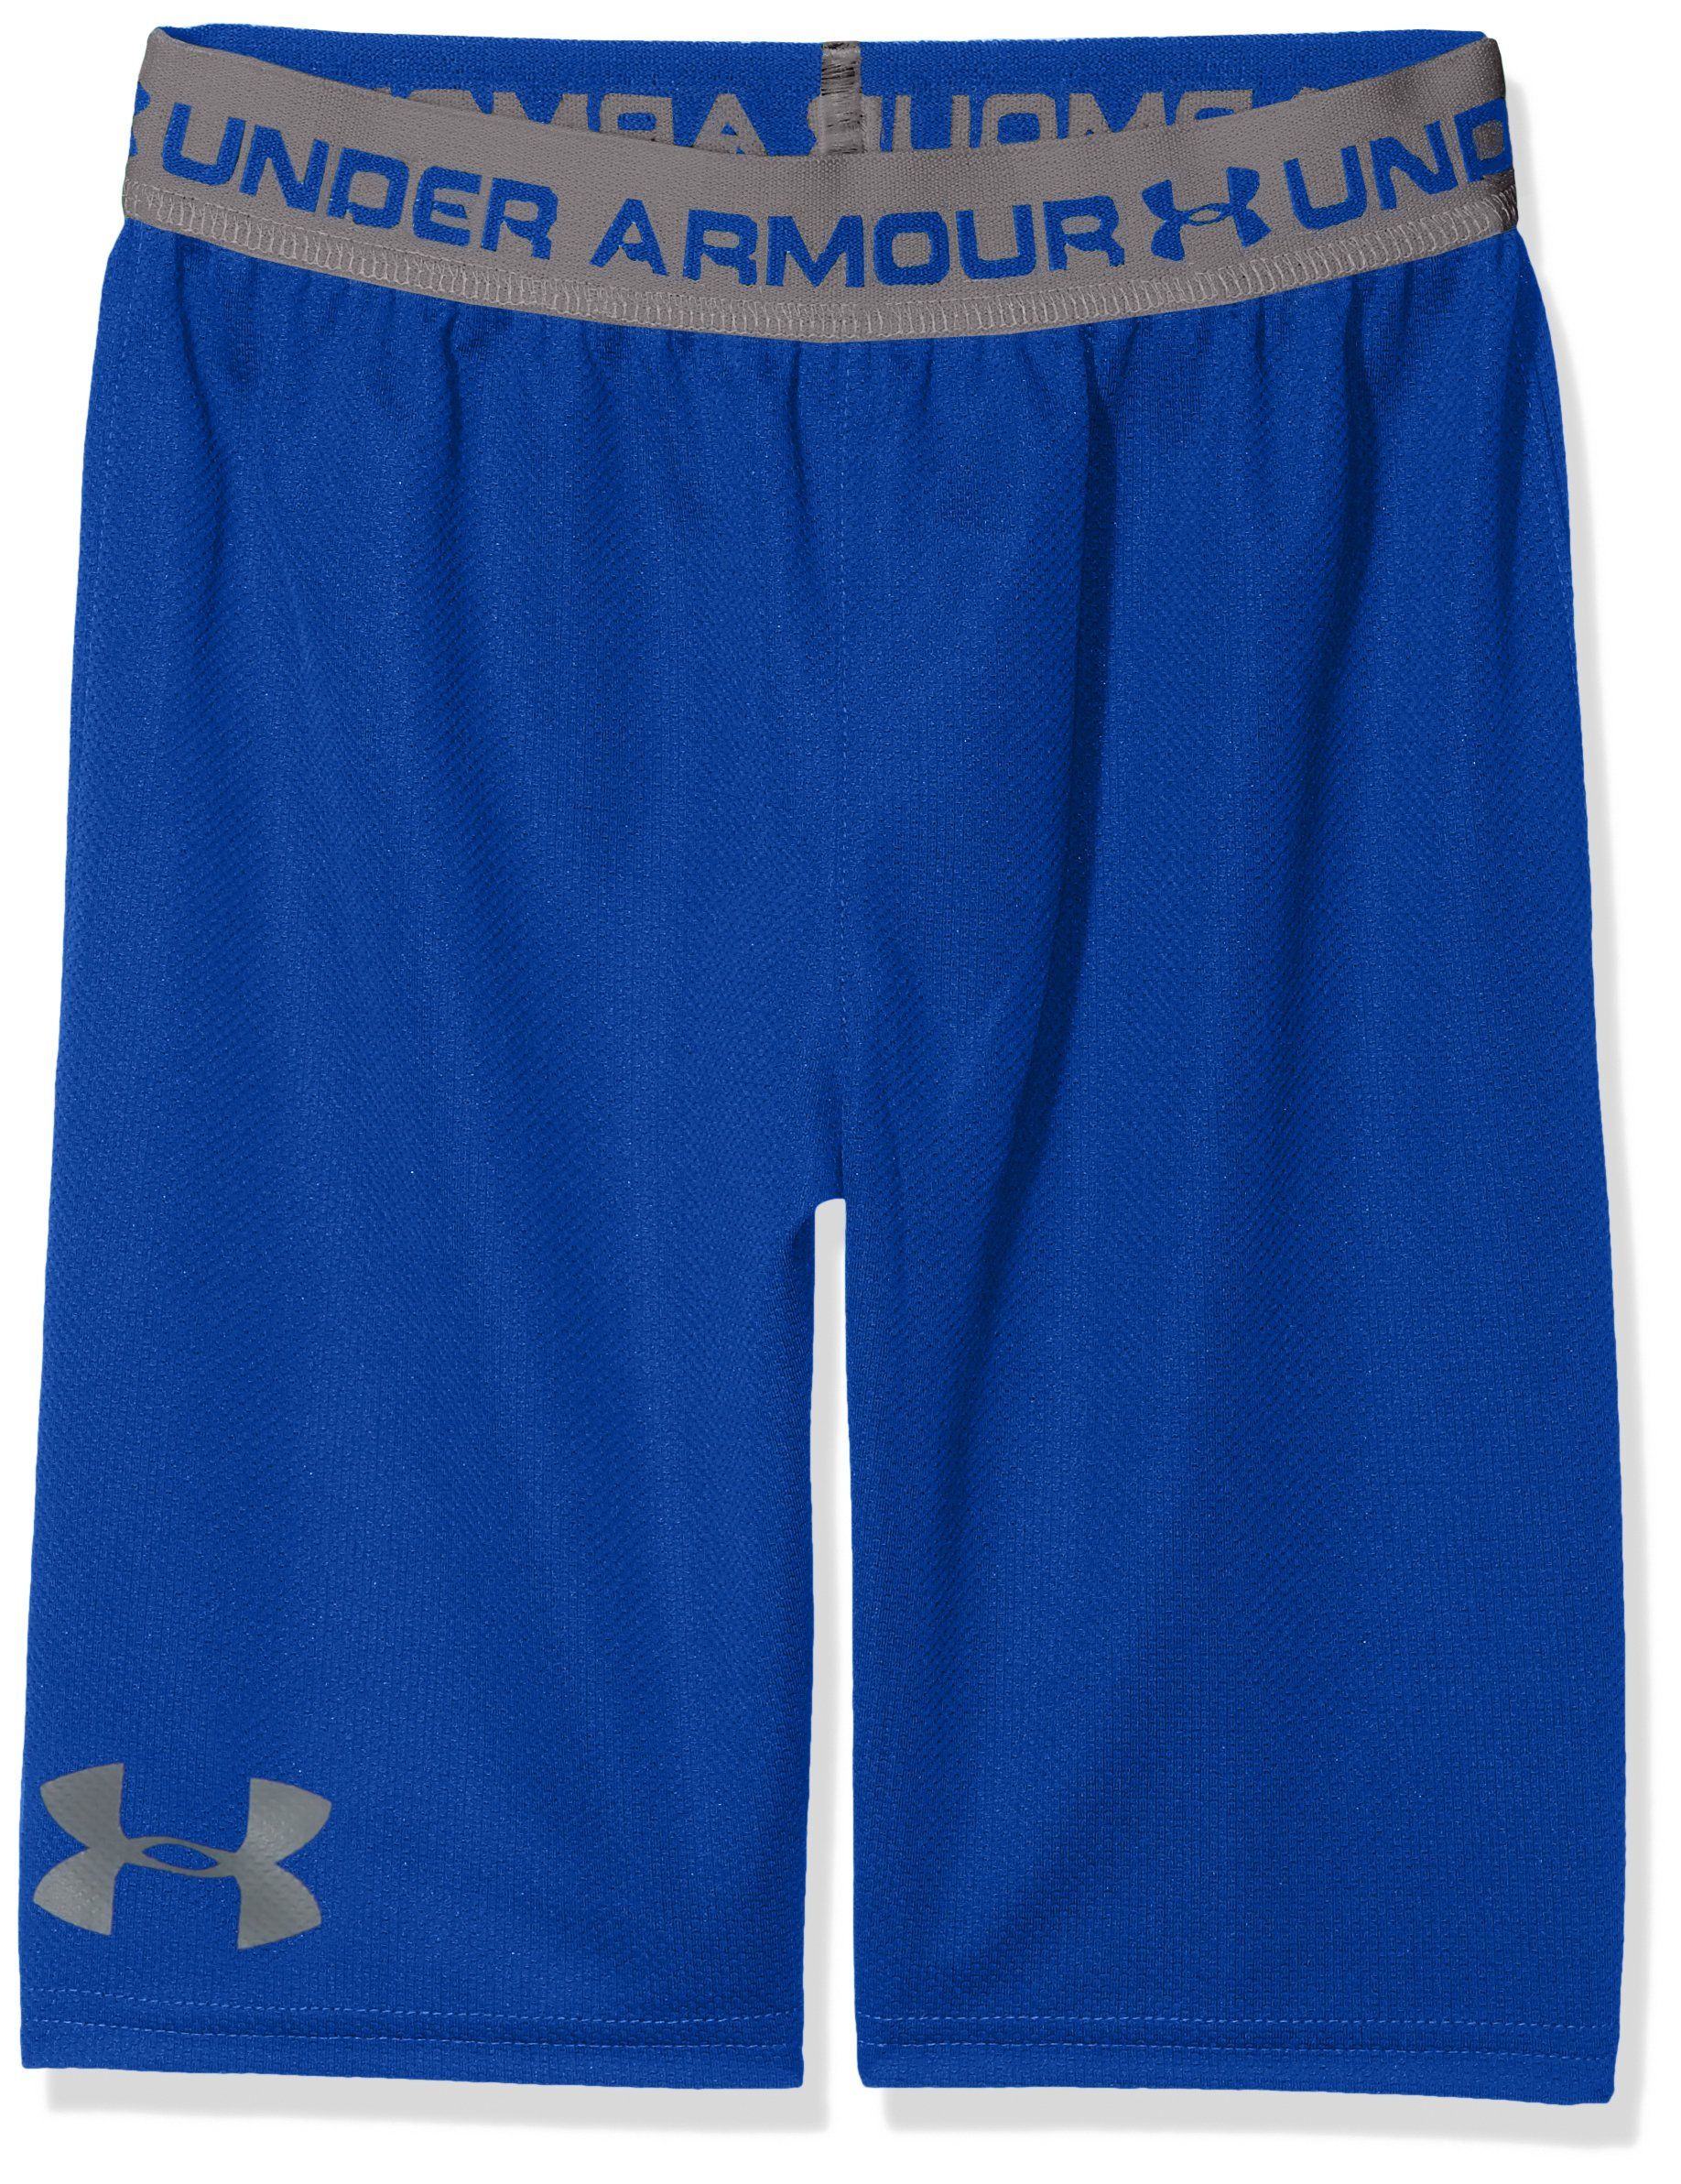 Under Armour Boys' Tech Prototype 2.0 Shorts, Royal (400)/Graphite, Youth Large by Under Armour